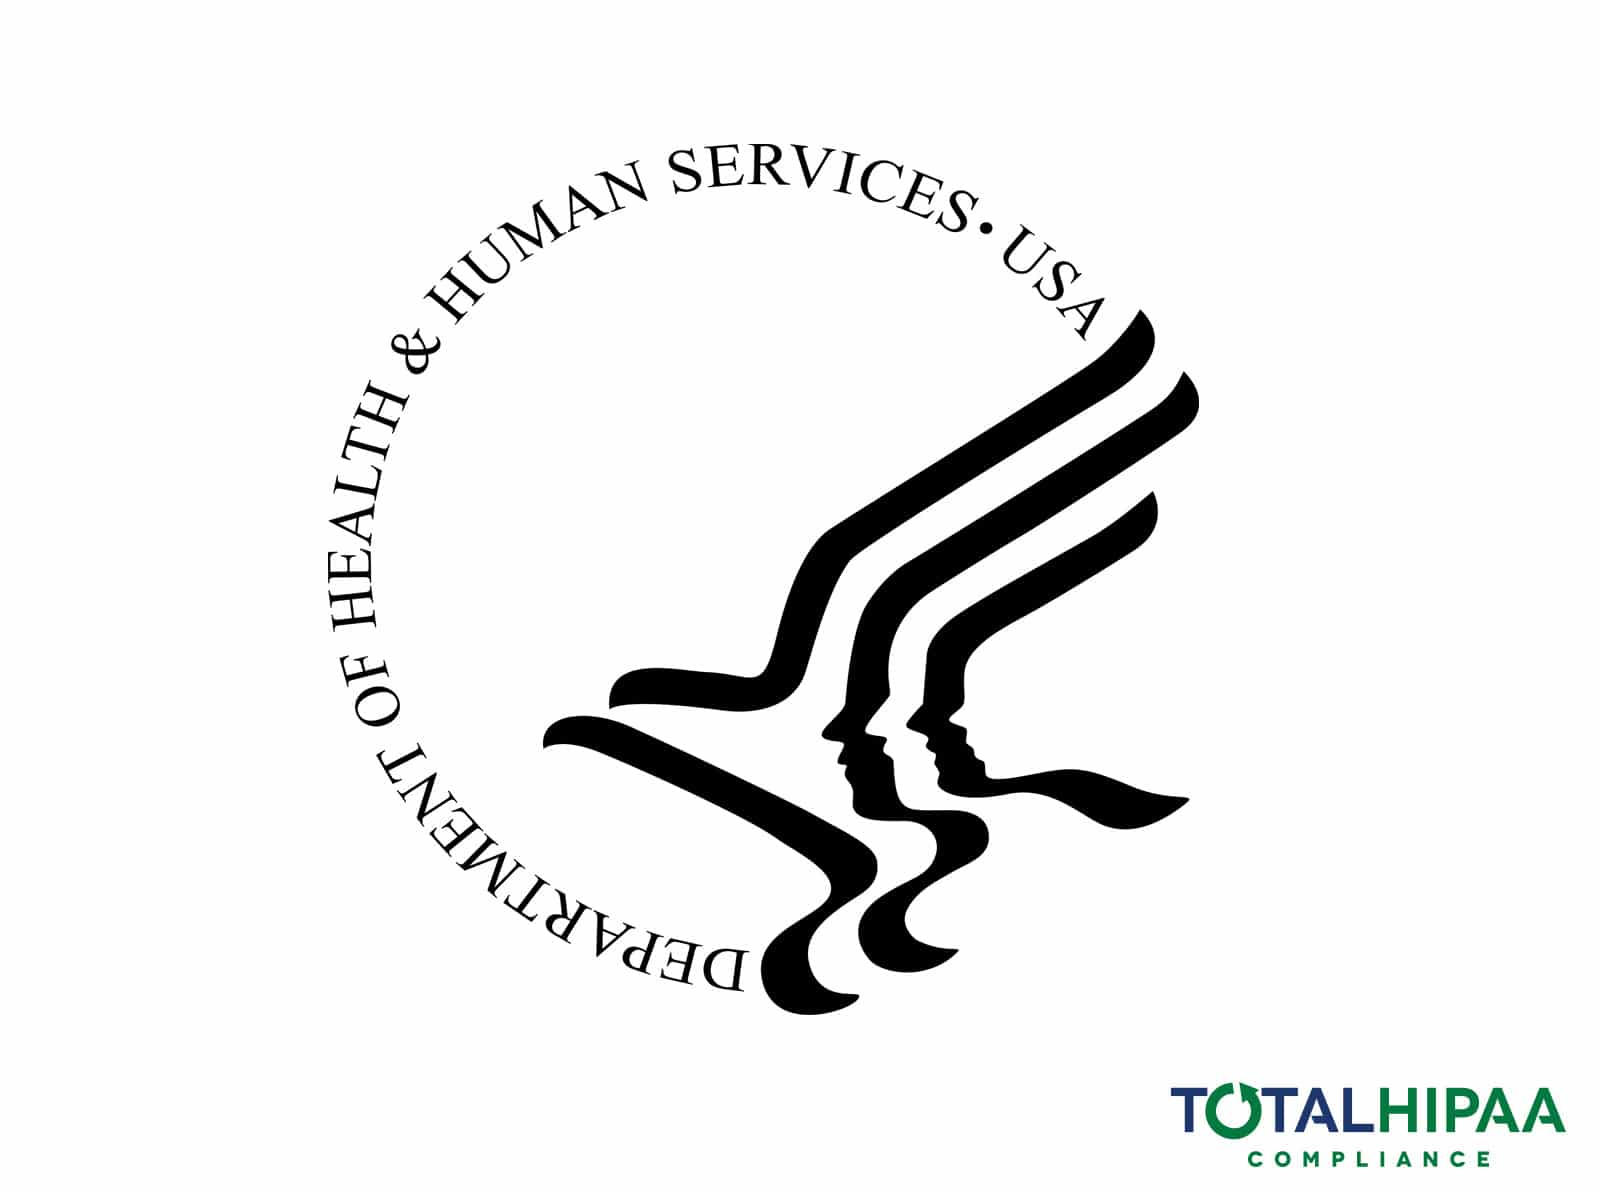 Cybersecurity Awareness Month • Total HIPAA Compliance